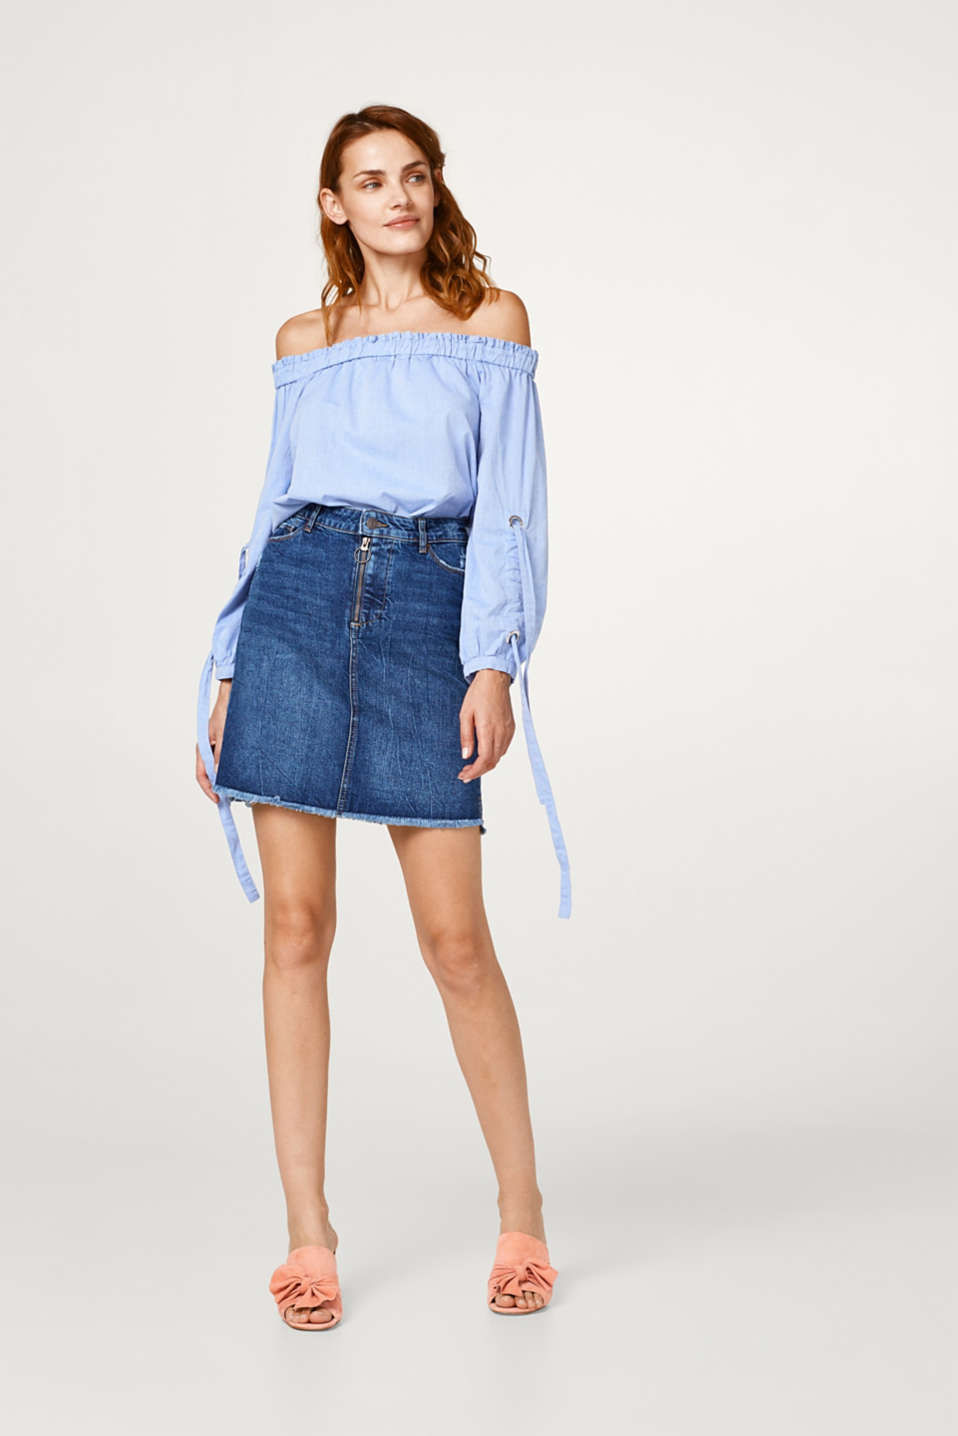 A-line stretch denim skirt with a frayed hem